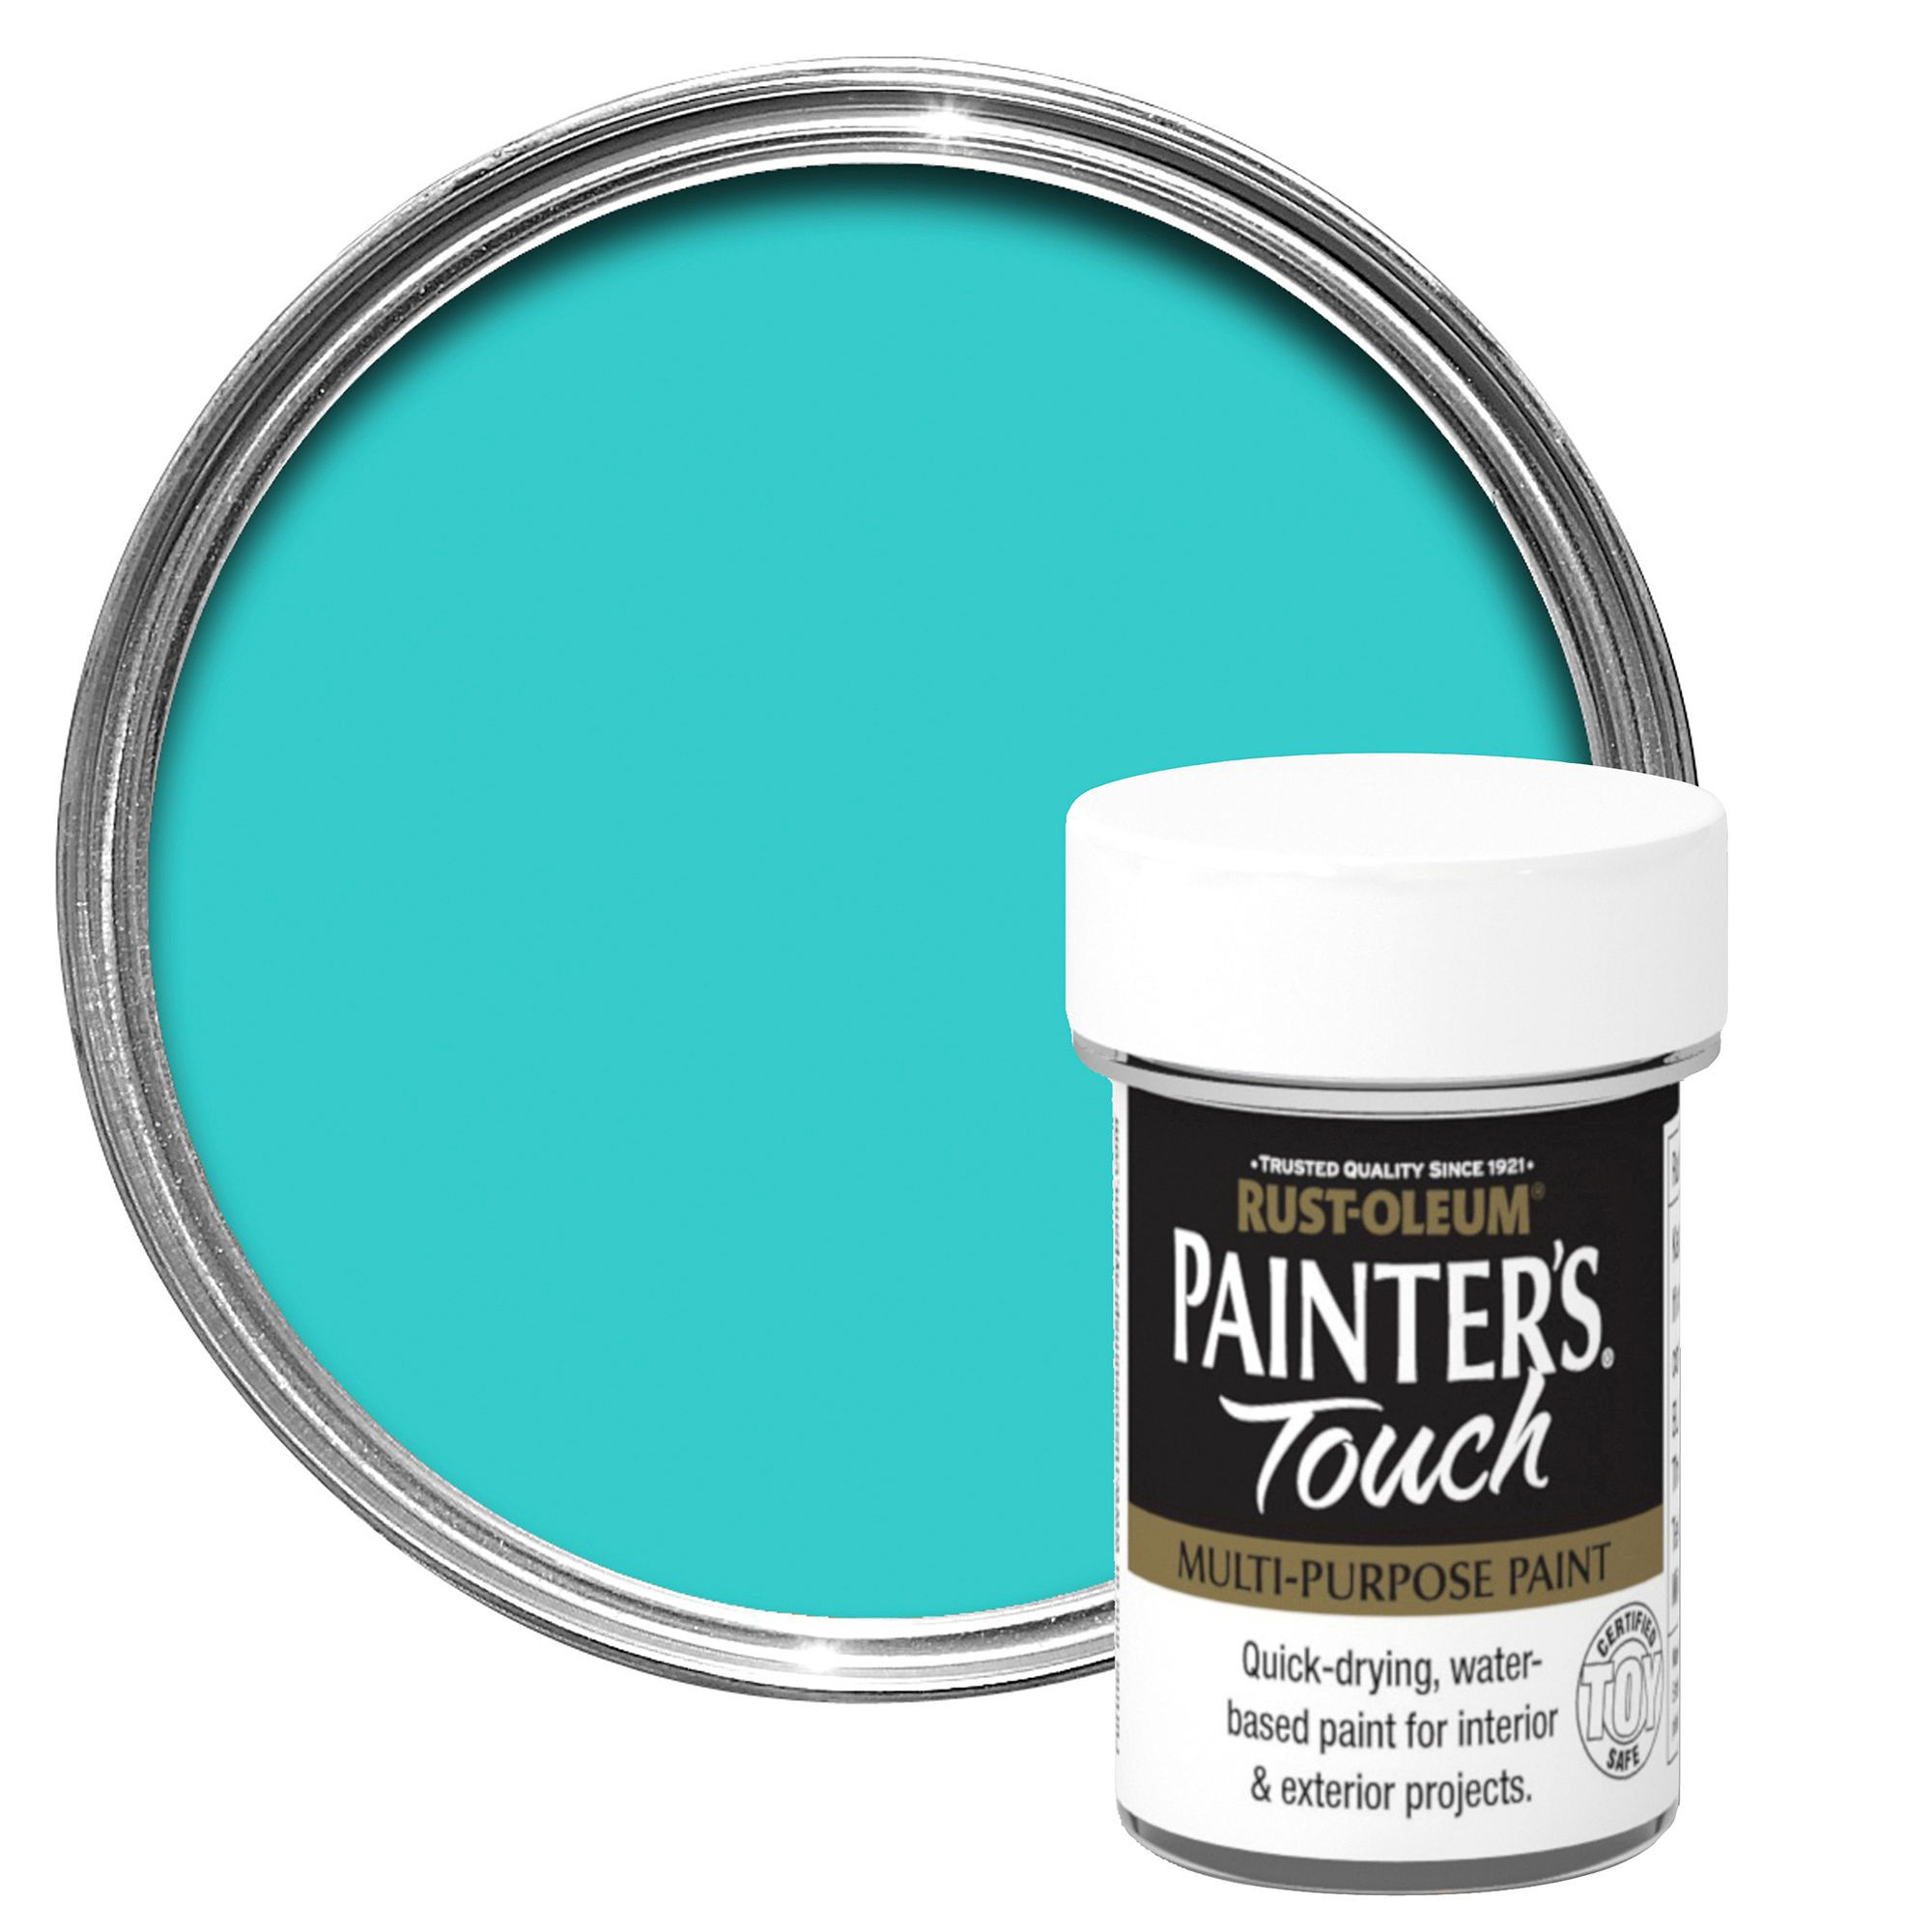 Rust-Oleum Painter's Touch Interior & Exterior Aqua Gloss Multipurpose Paint 20ml